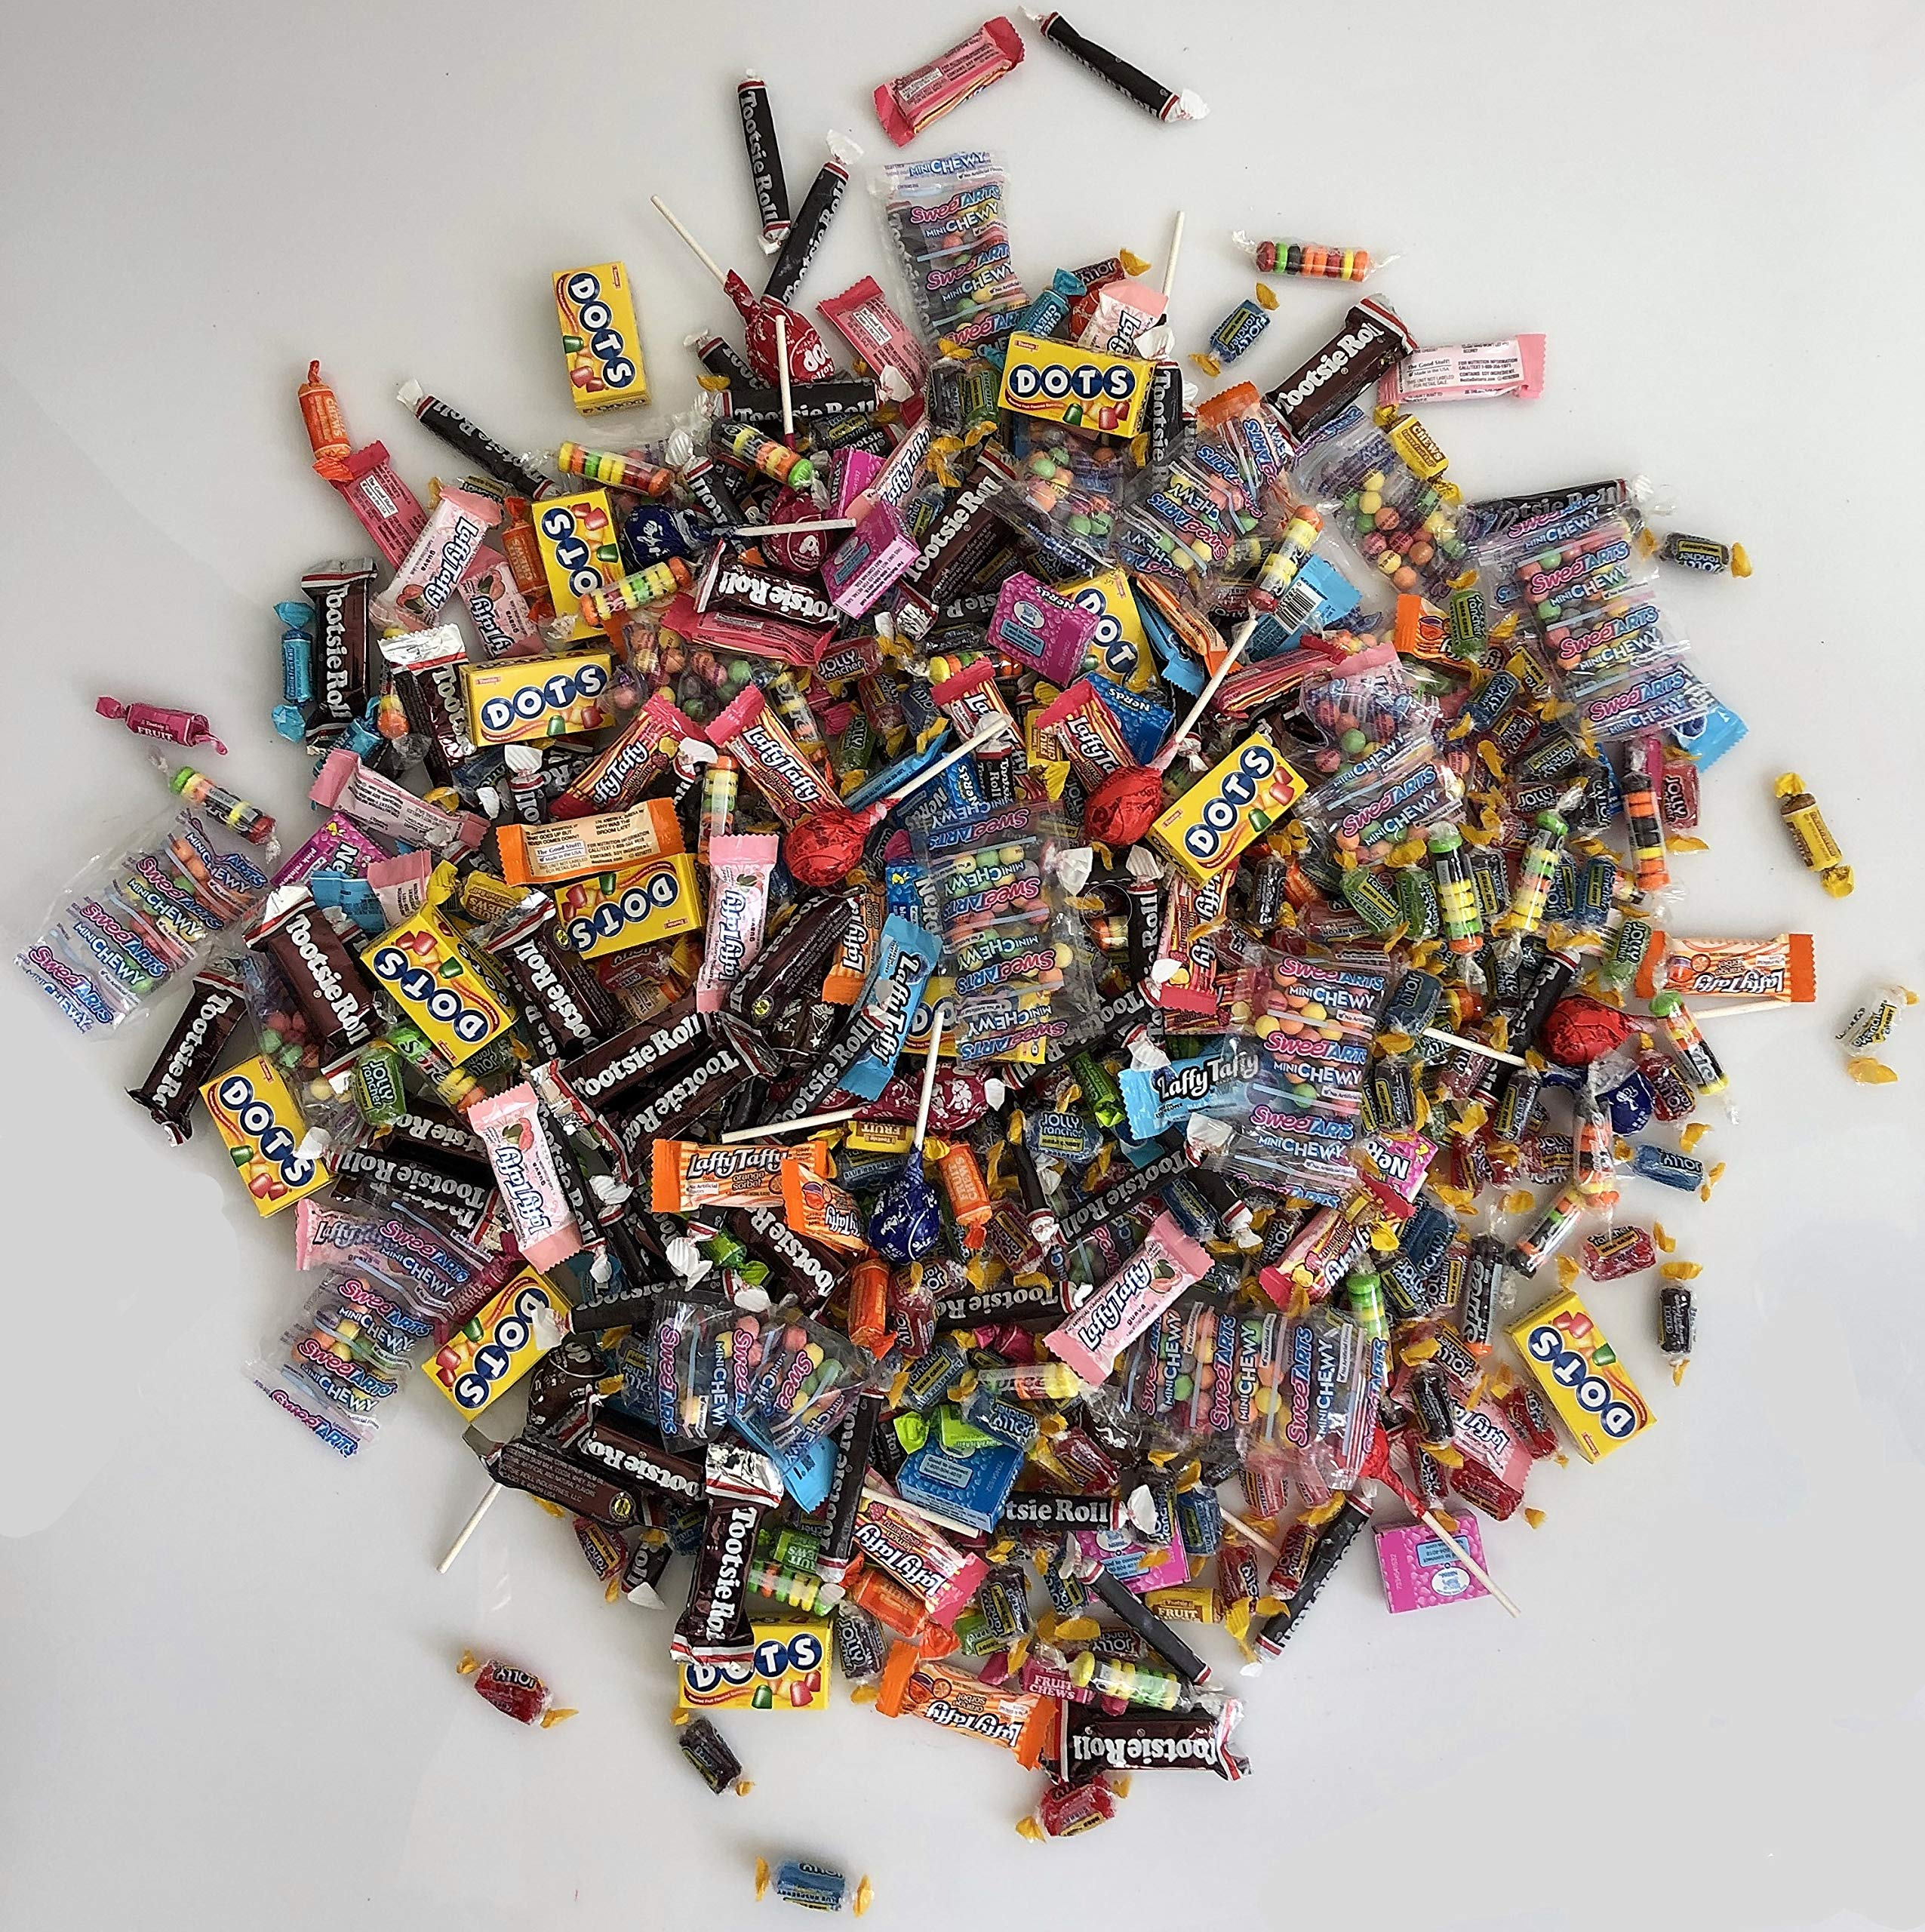 Assorted Bulk Candy, Individually Wrapped: 12 LB Box Variety Pack with Tootsie Rolls, Tootsie Pops, Jolly Ranchers, Nerds, Assorted Laffy Taffy's & More! Great for Holiday and Party Treats by Betalicious (Image #3)